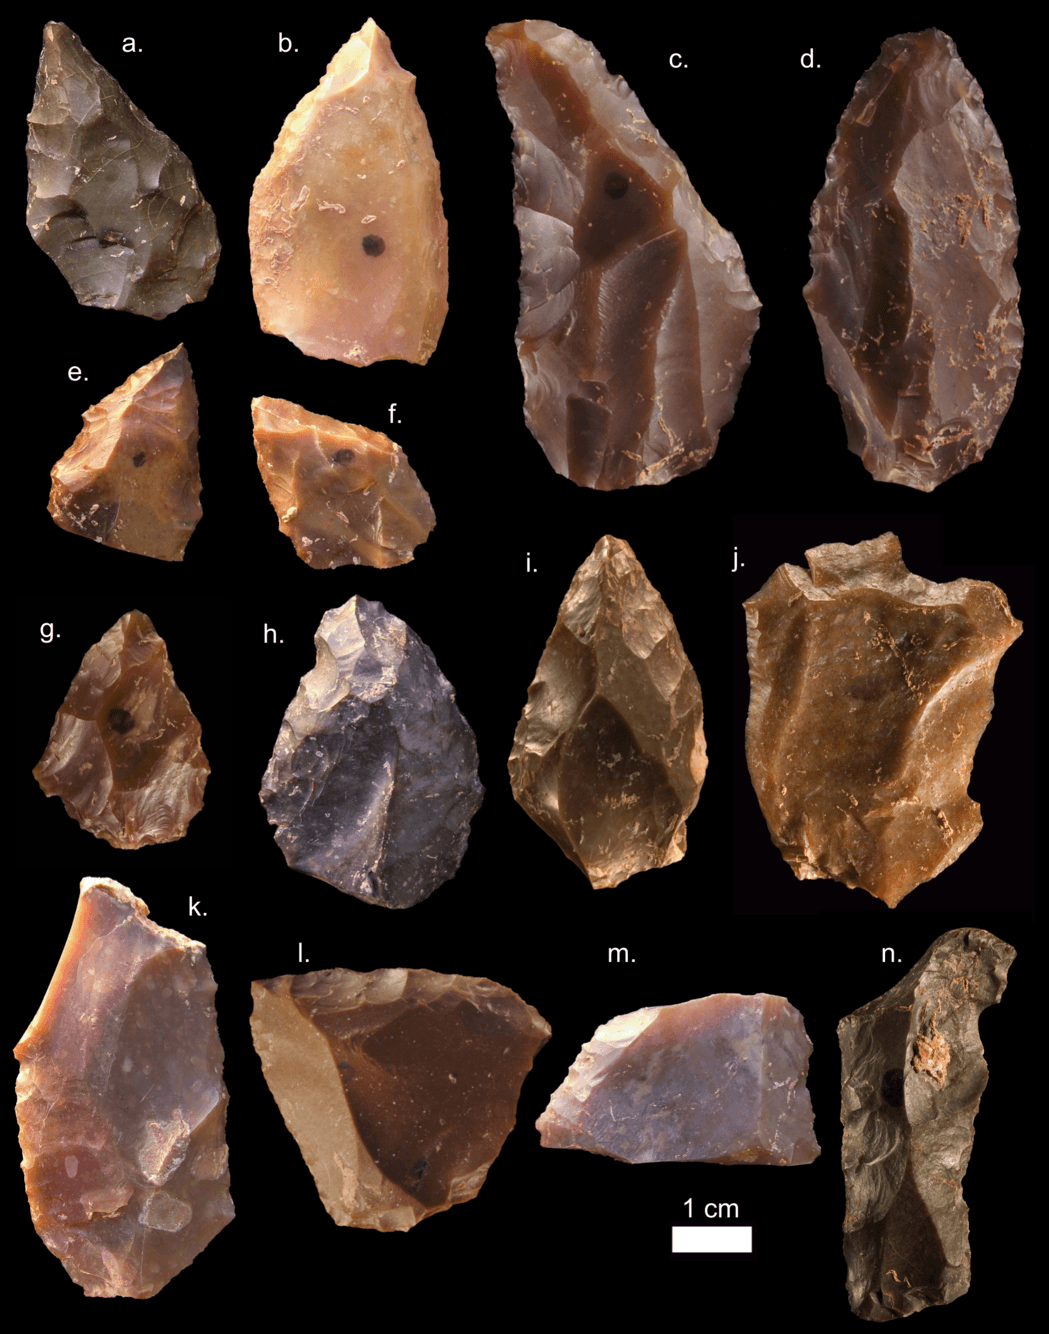 Some of the Middle Stone Age stone tools from Jebel Irhoud (Morocco)